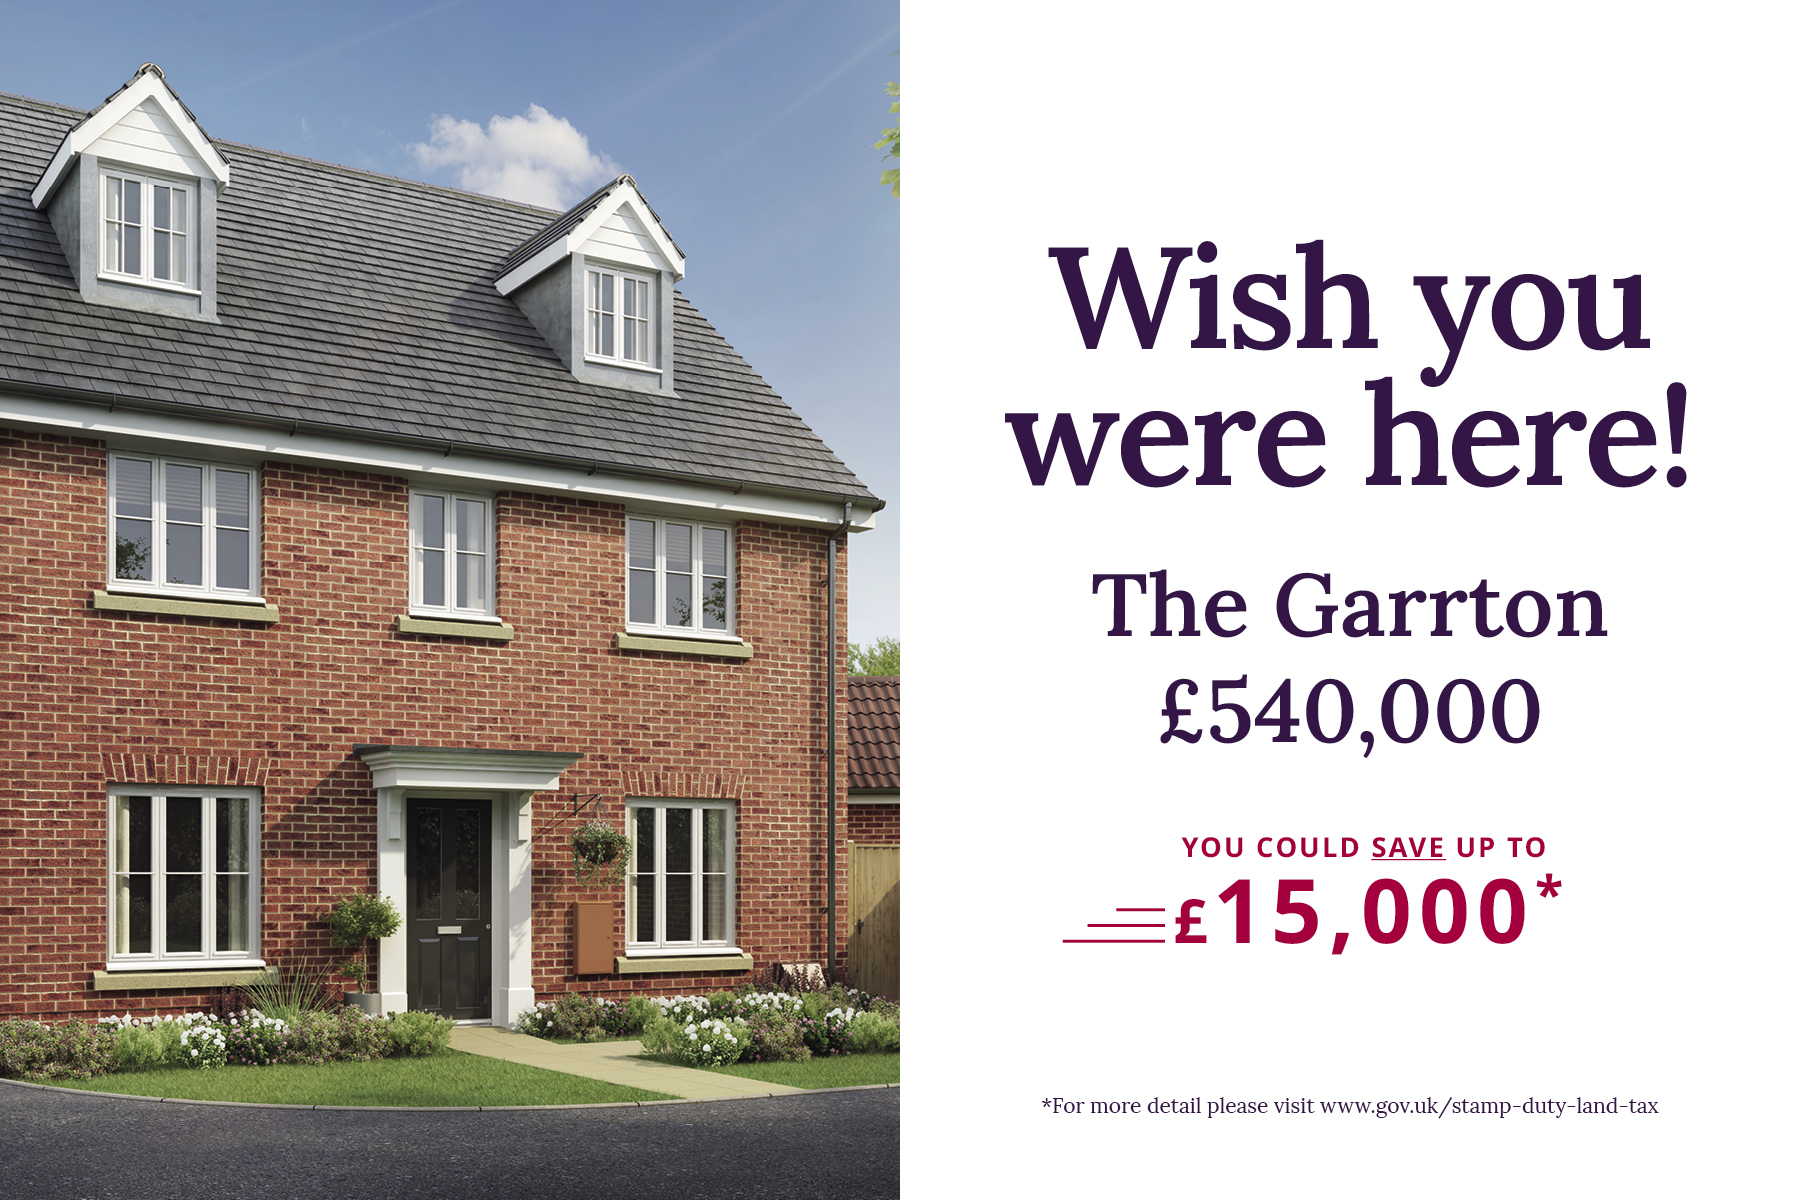 44647_TWEA_Stamp Duty_Webfiles_DA_v1_1_Lark Grange_Garrton New March 21